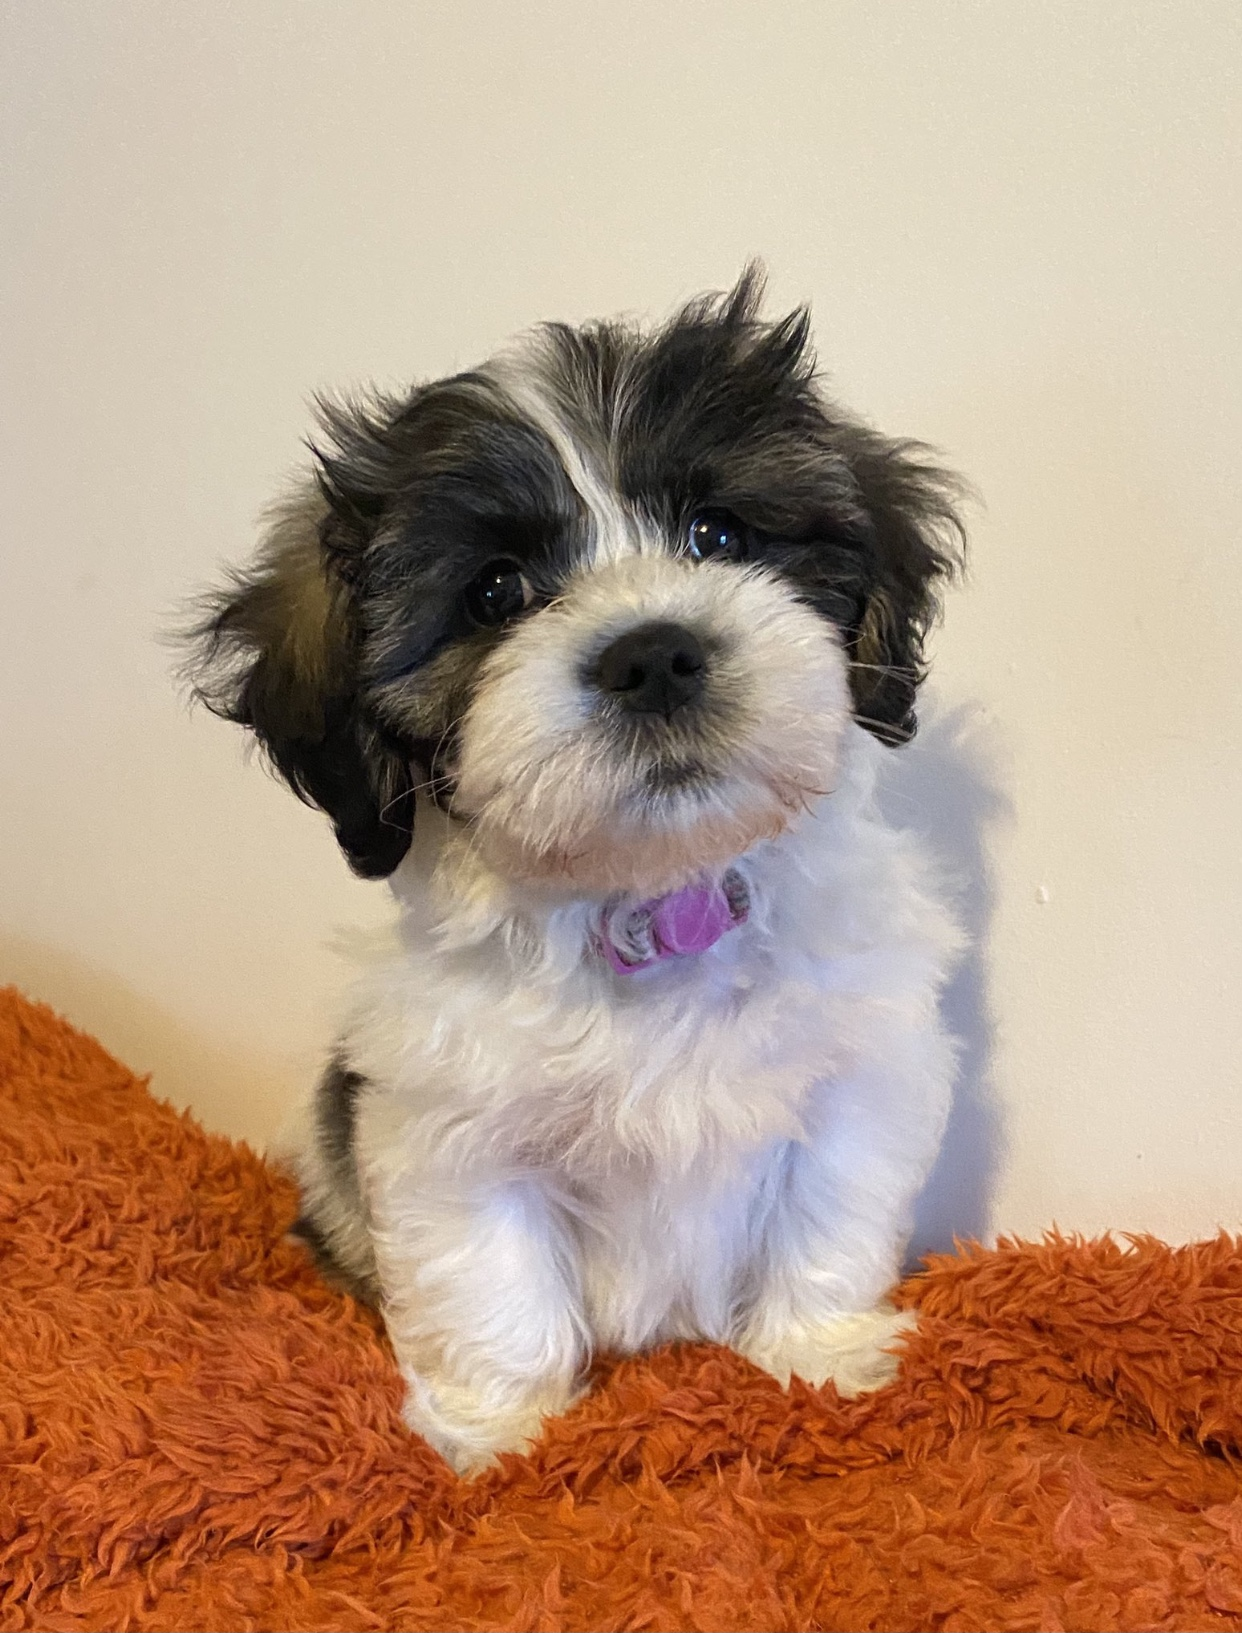 black and white, fluffy puppy with purple collar